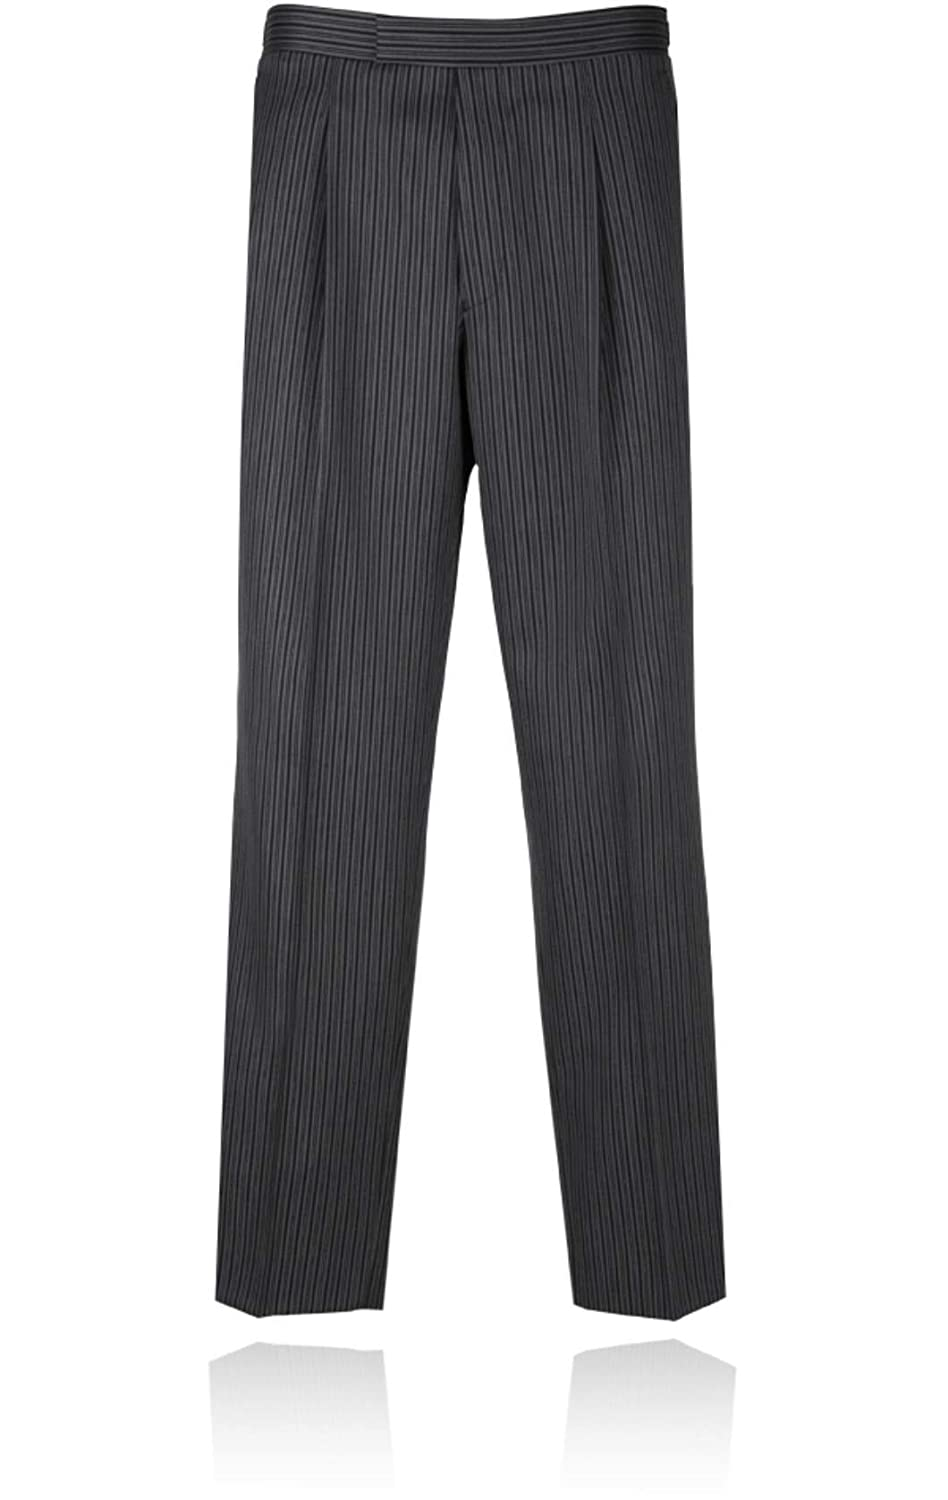 1920s Mens Formal Wear Clothing Mens Black & Grey Striped Morning Suit Trousers £50.00 AT vintagedancer.com